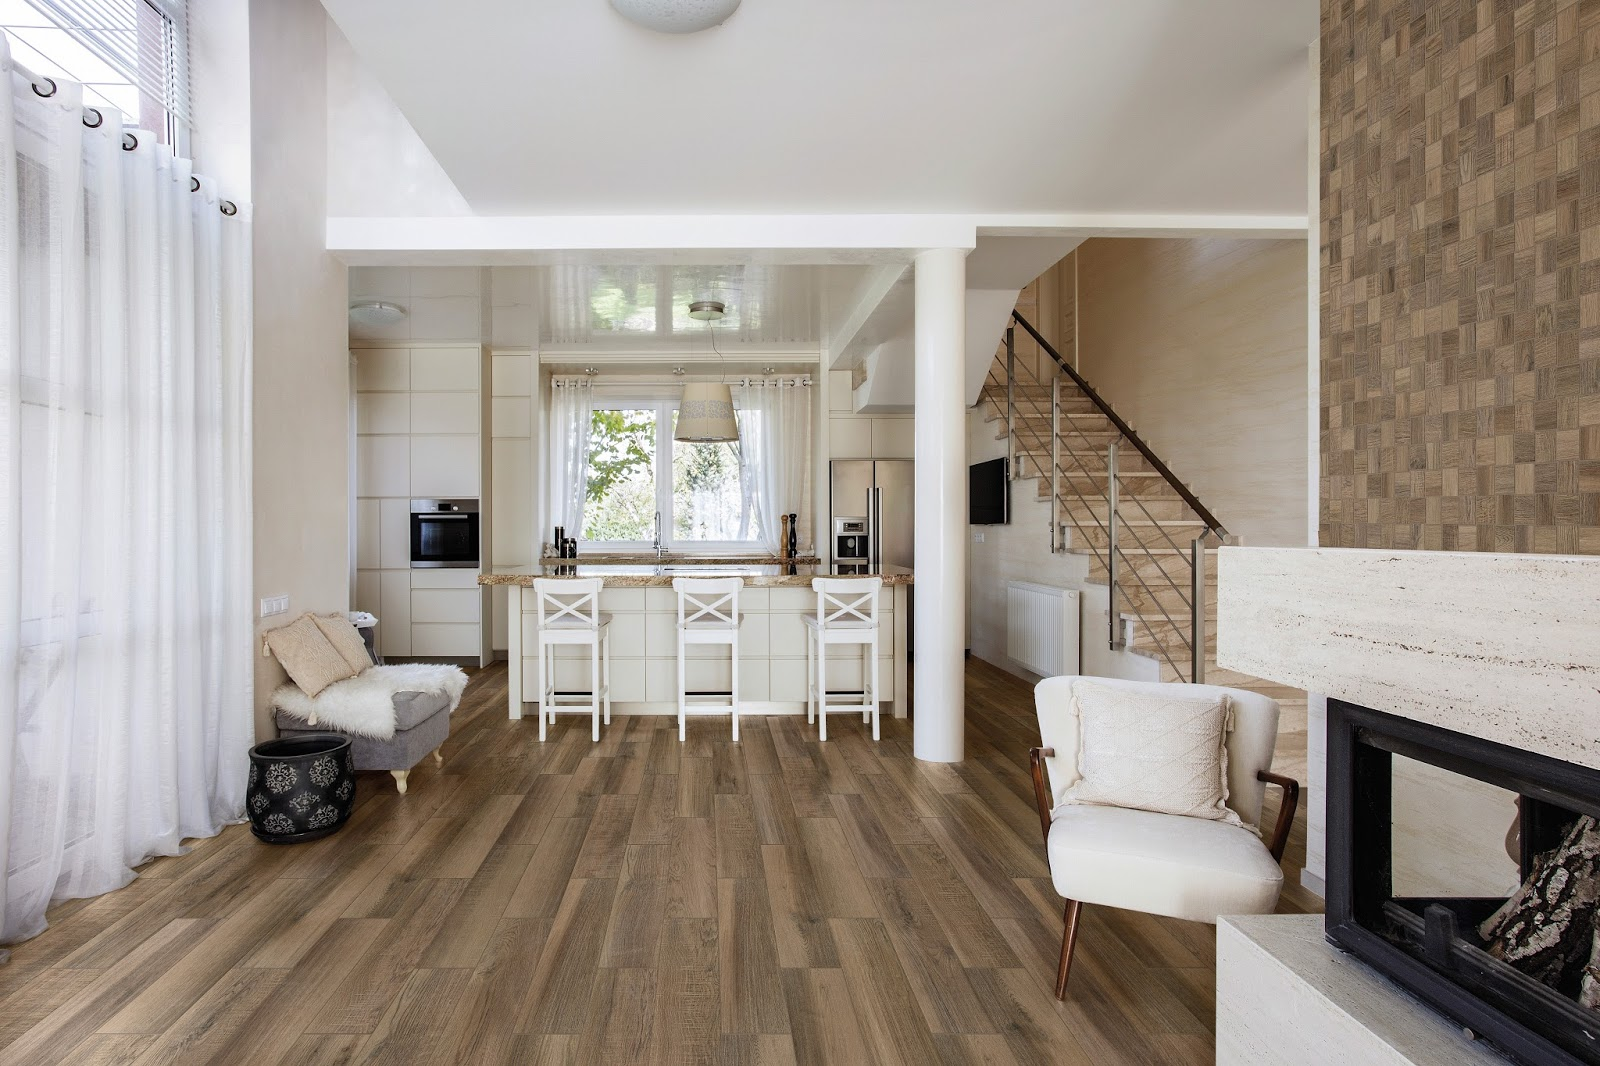 ISC Surfaces Florida Tiles Kerala Brings An Inspiring Wood Look To Any Room